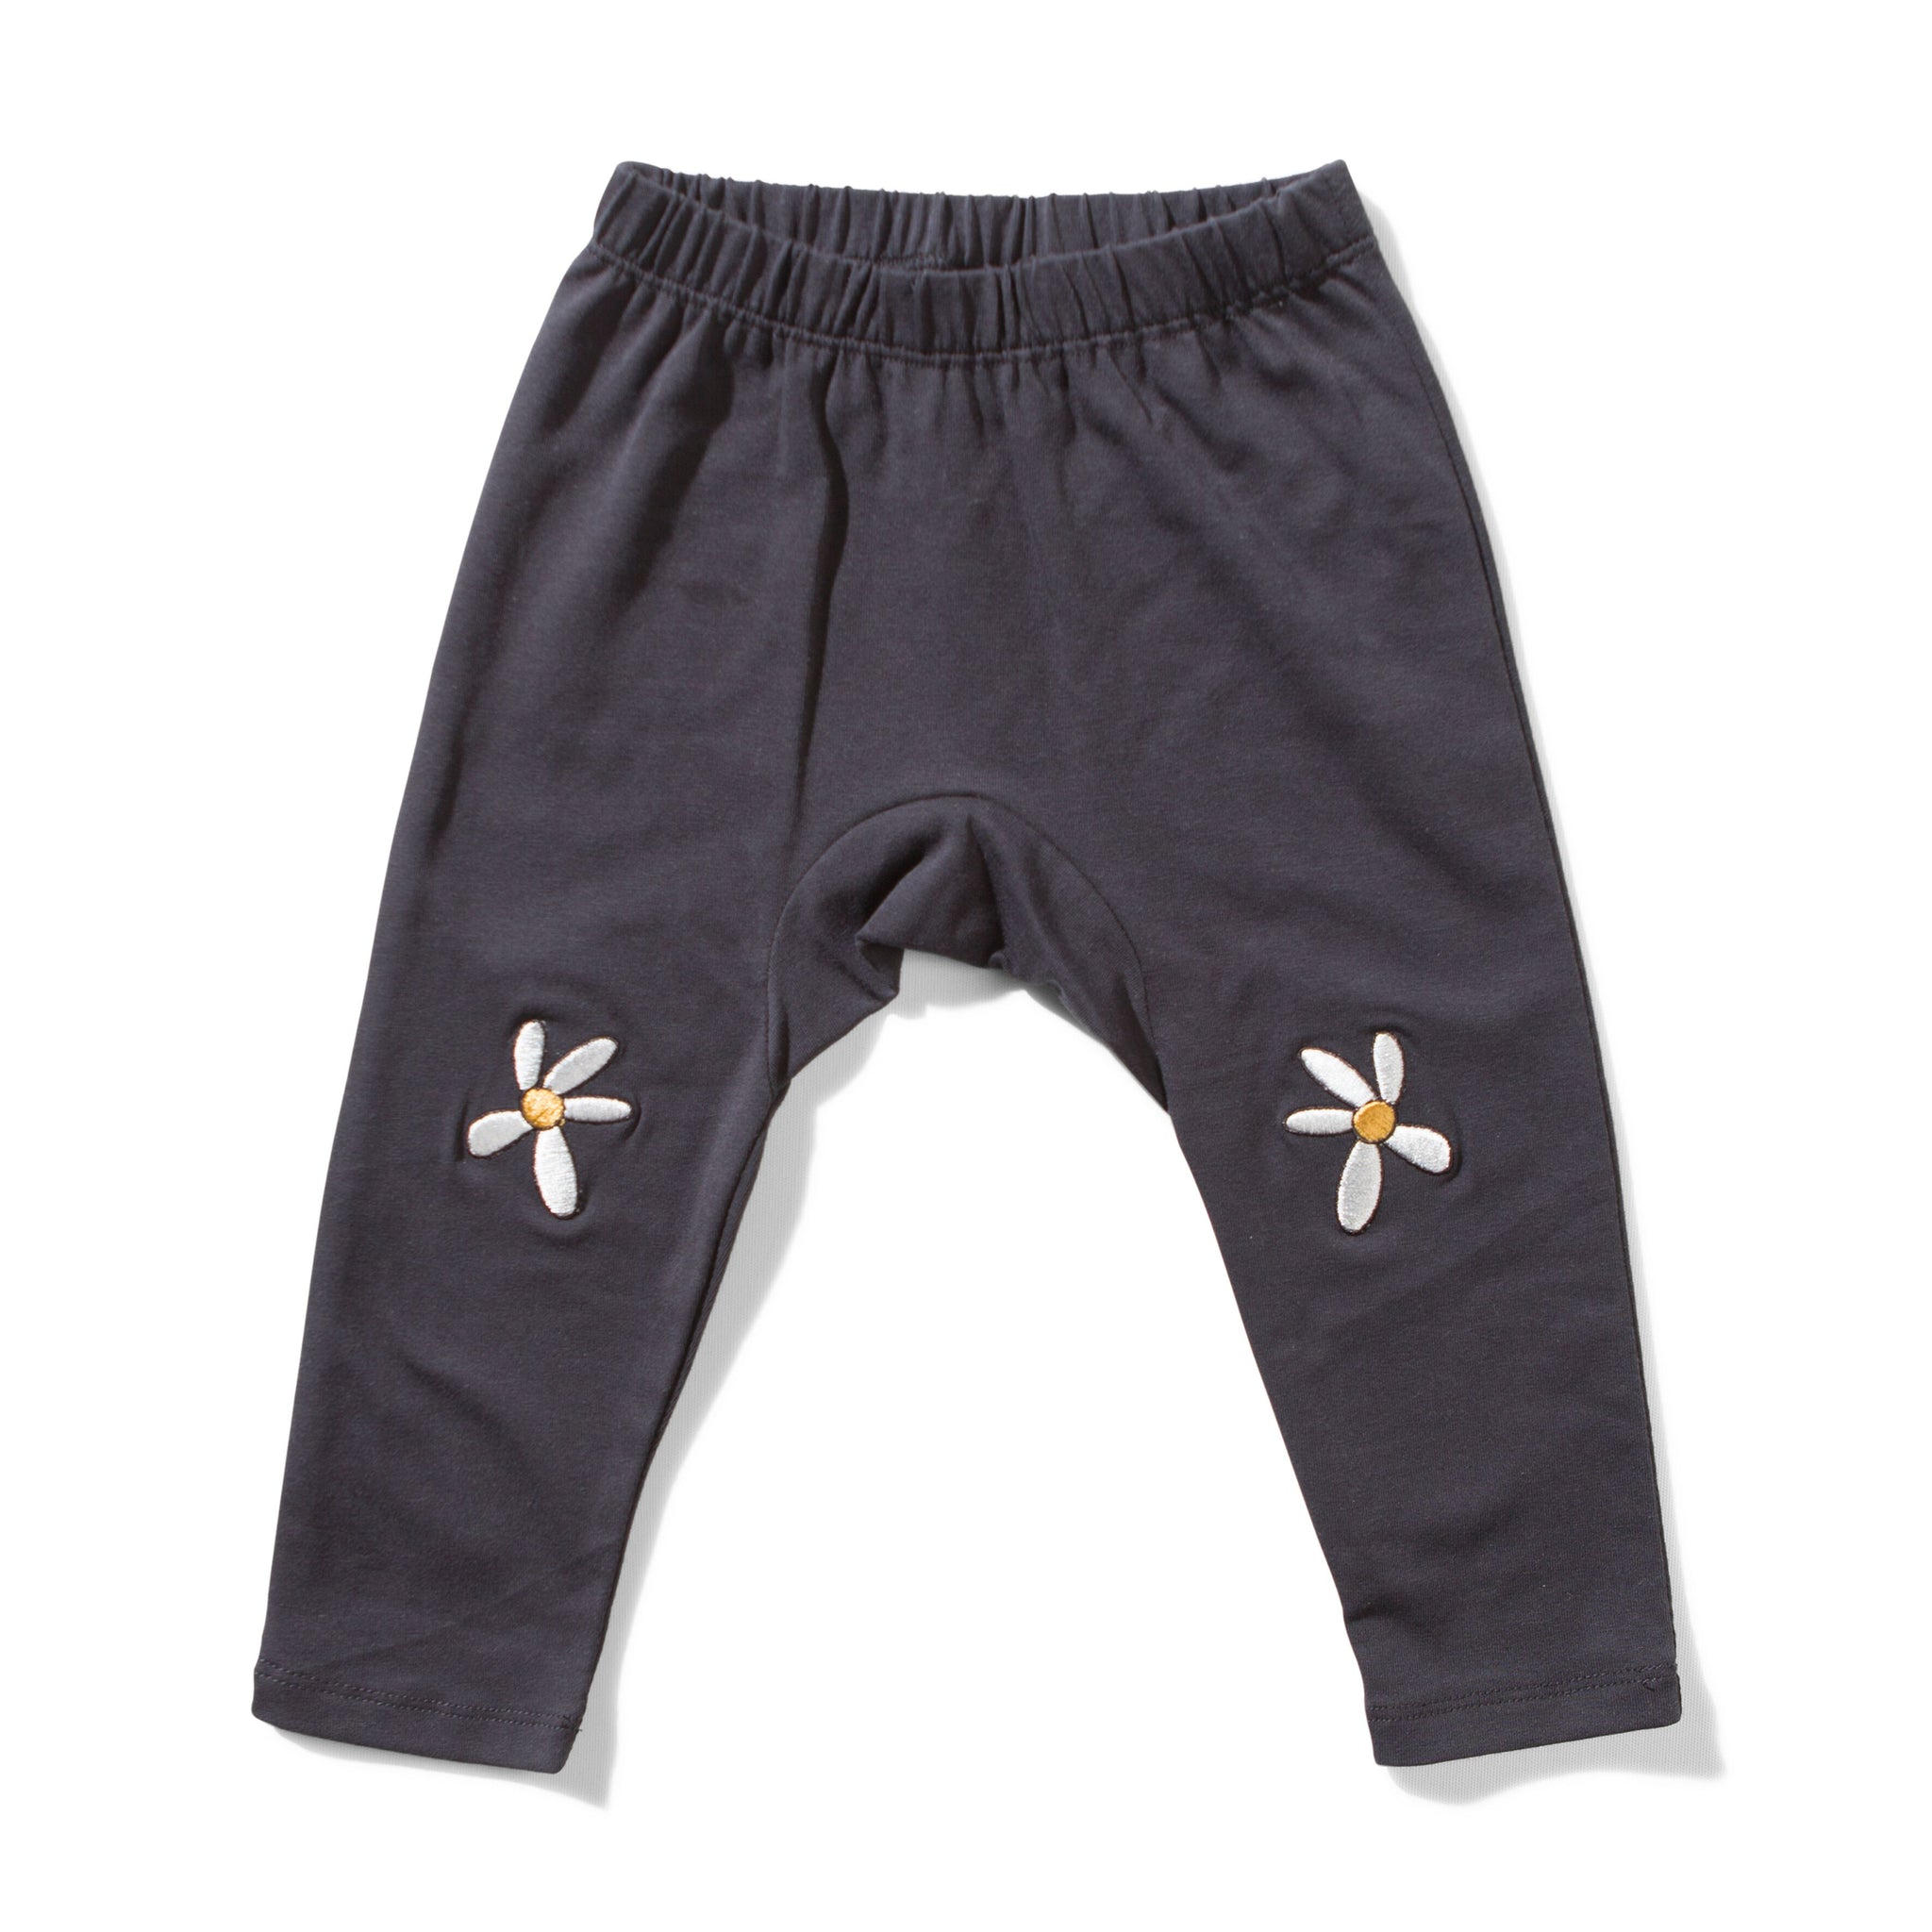 MUNSTER KIDS Girls Sweatpants with Daisies